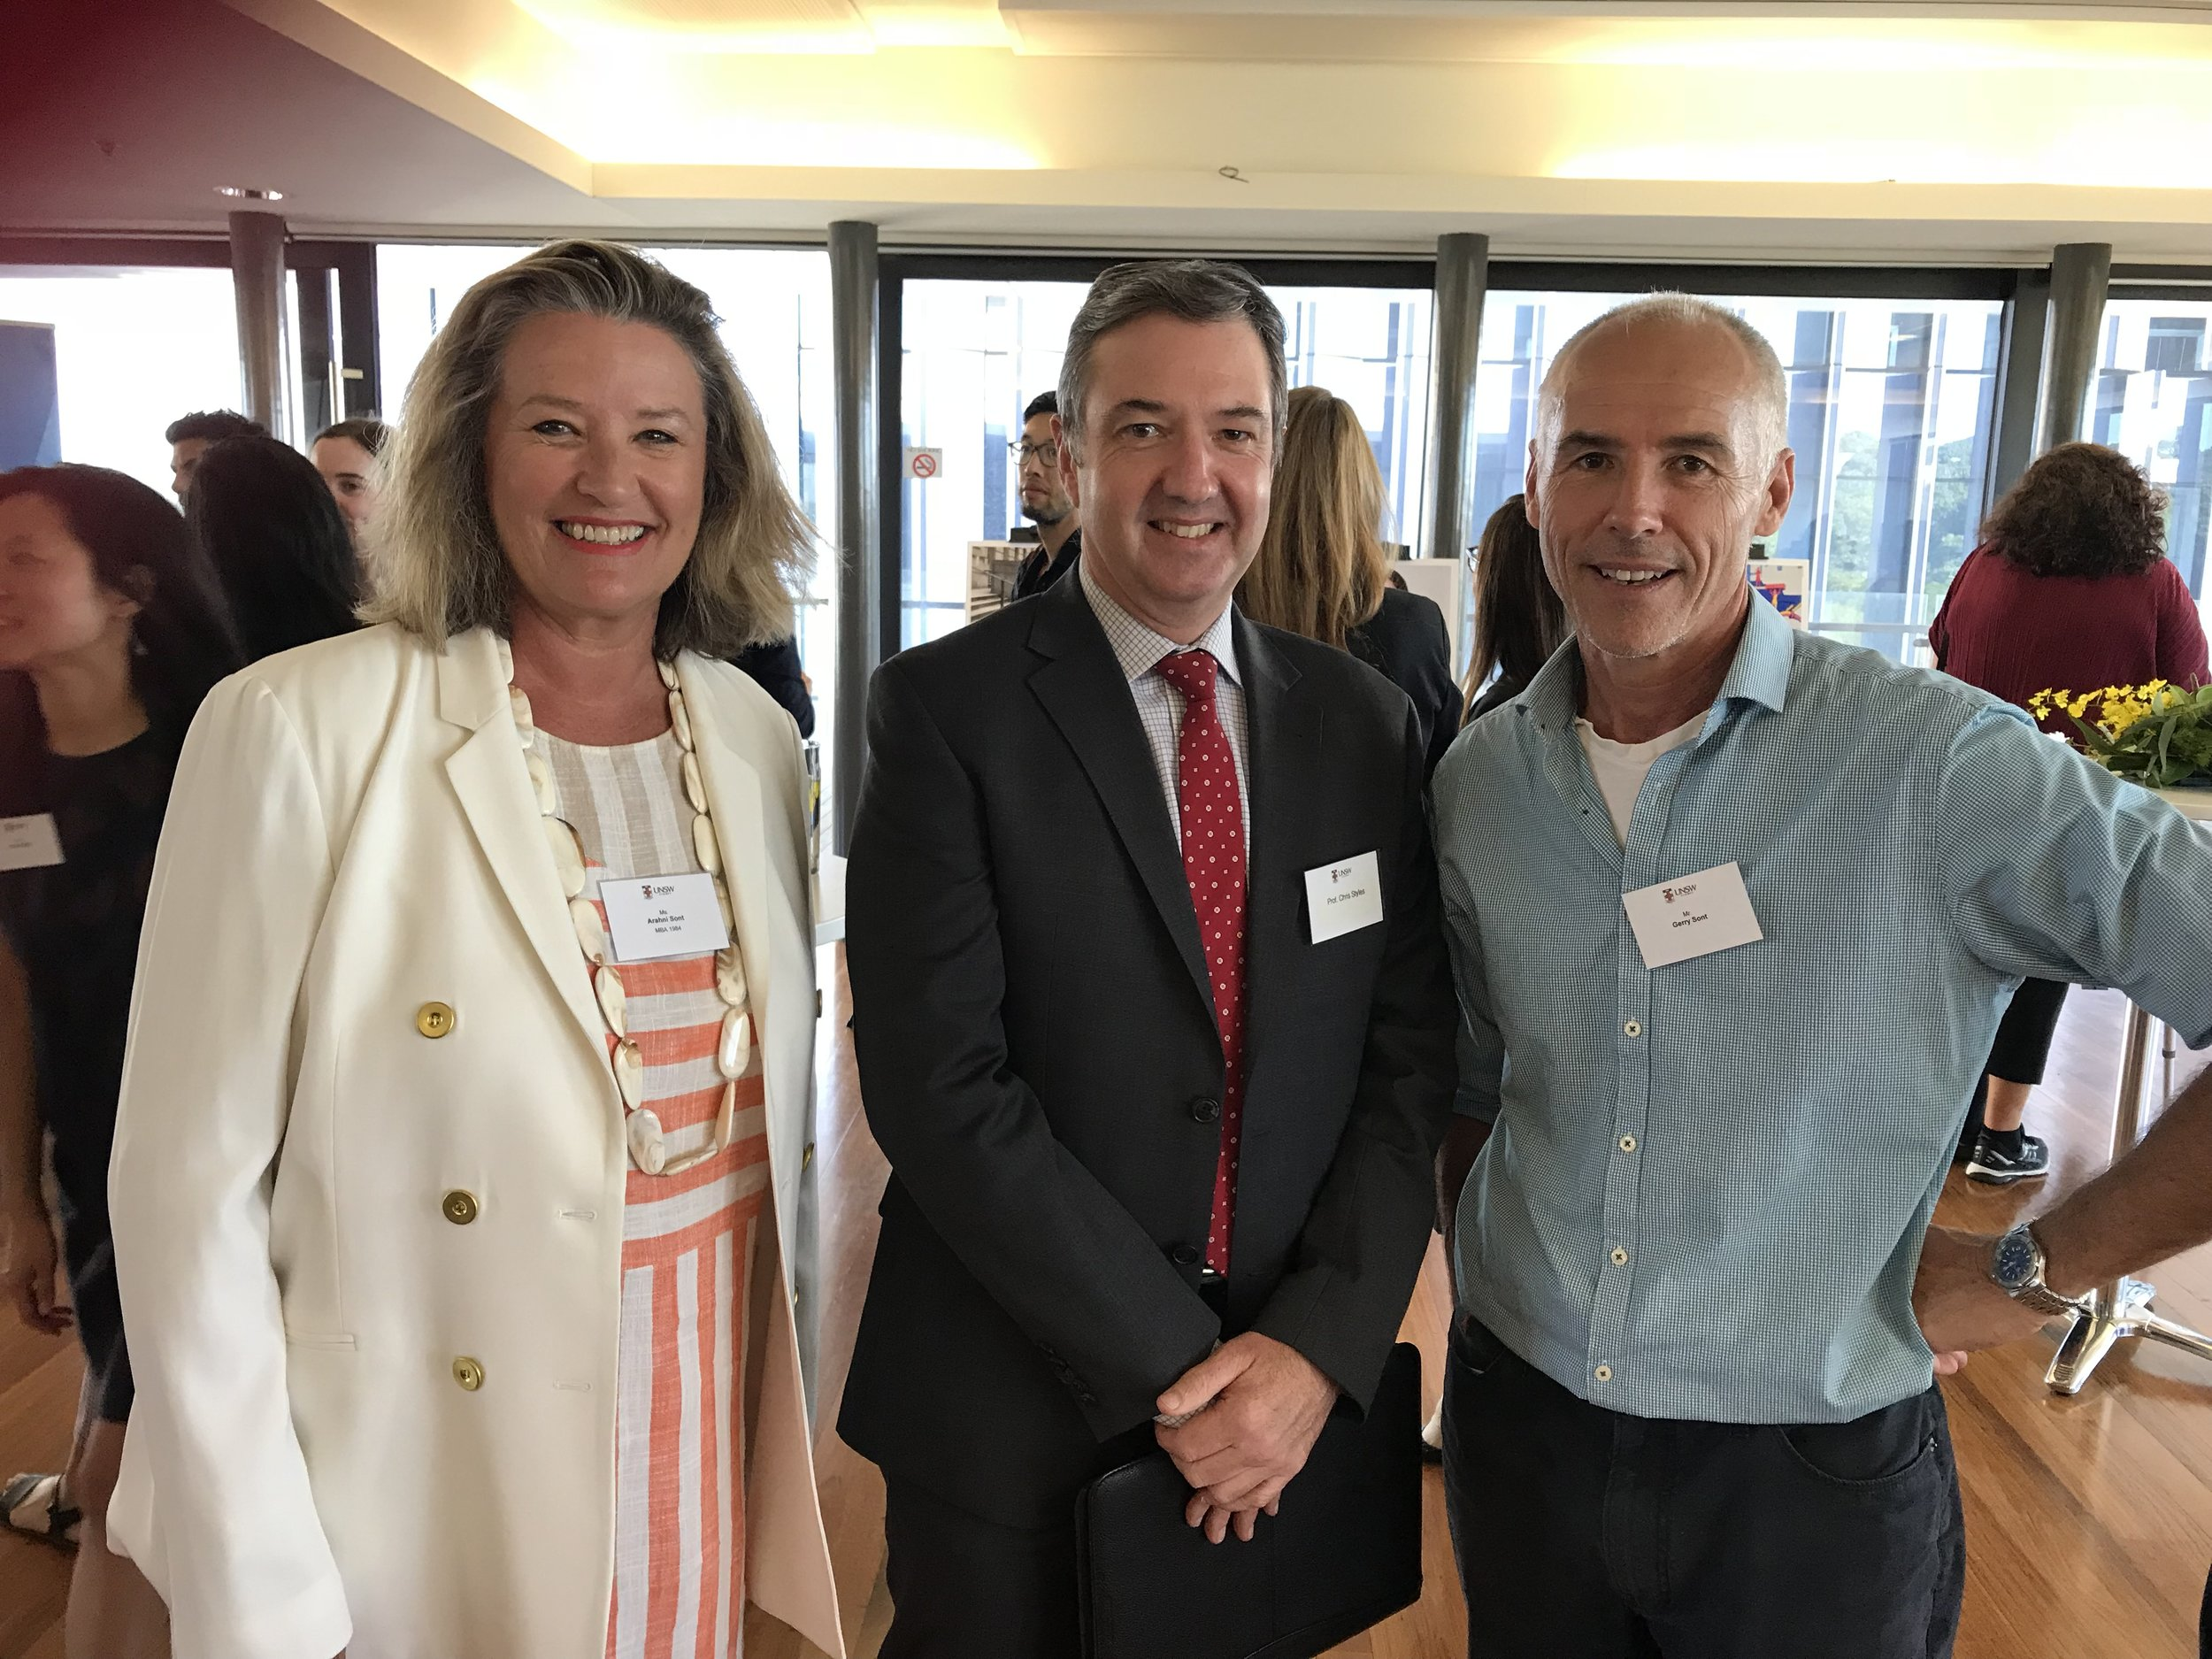 Left to right: Arahni Sont - Centro ASSIST, Professor Chris Styles - Dean UNSW Business School, Gerry Sont - Adjunct faculty AGSM/Corporate Trainer